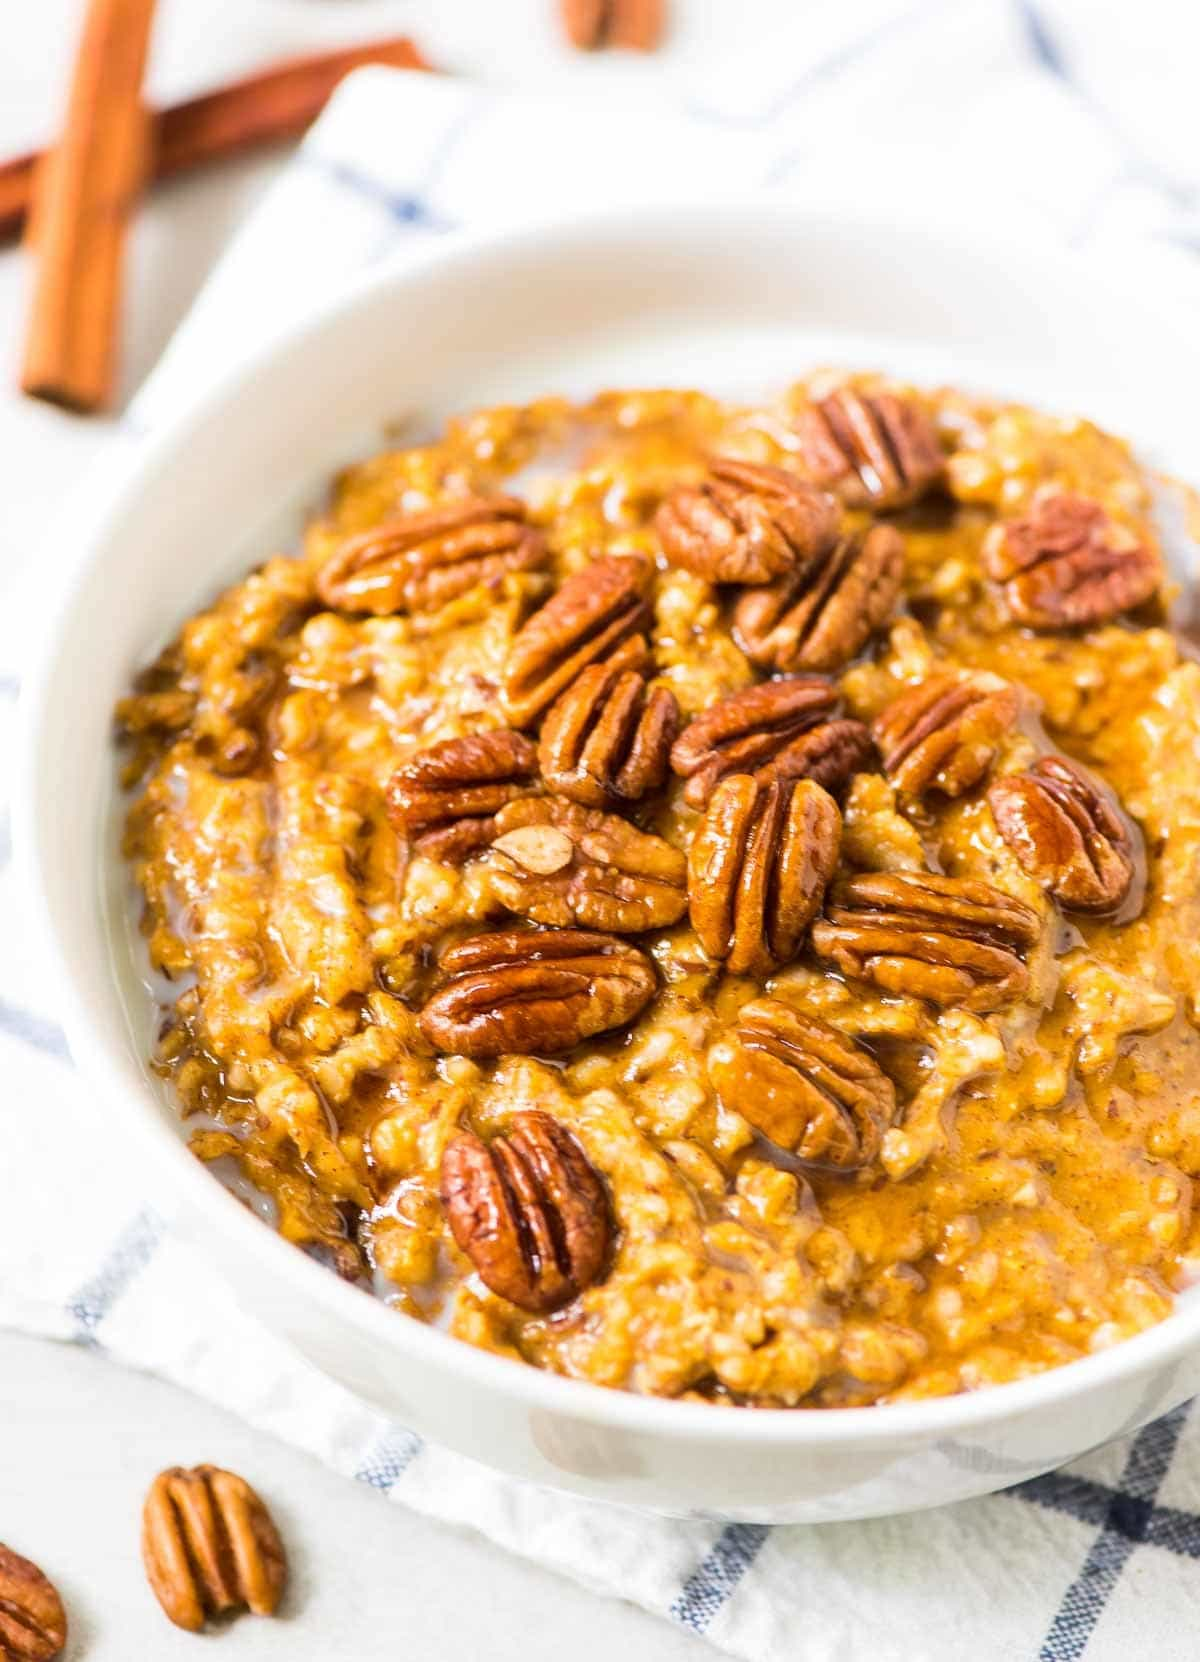 Slow Cooker Pumpkin Overnight Oats. The perfect fall breakfast. Ready to go as soon as you wake up! @wellplated